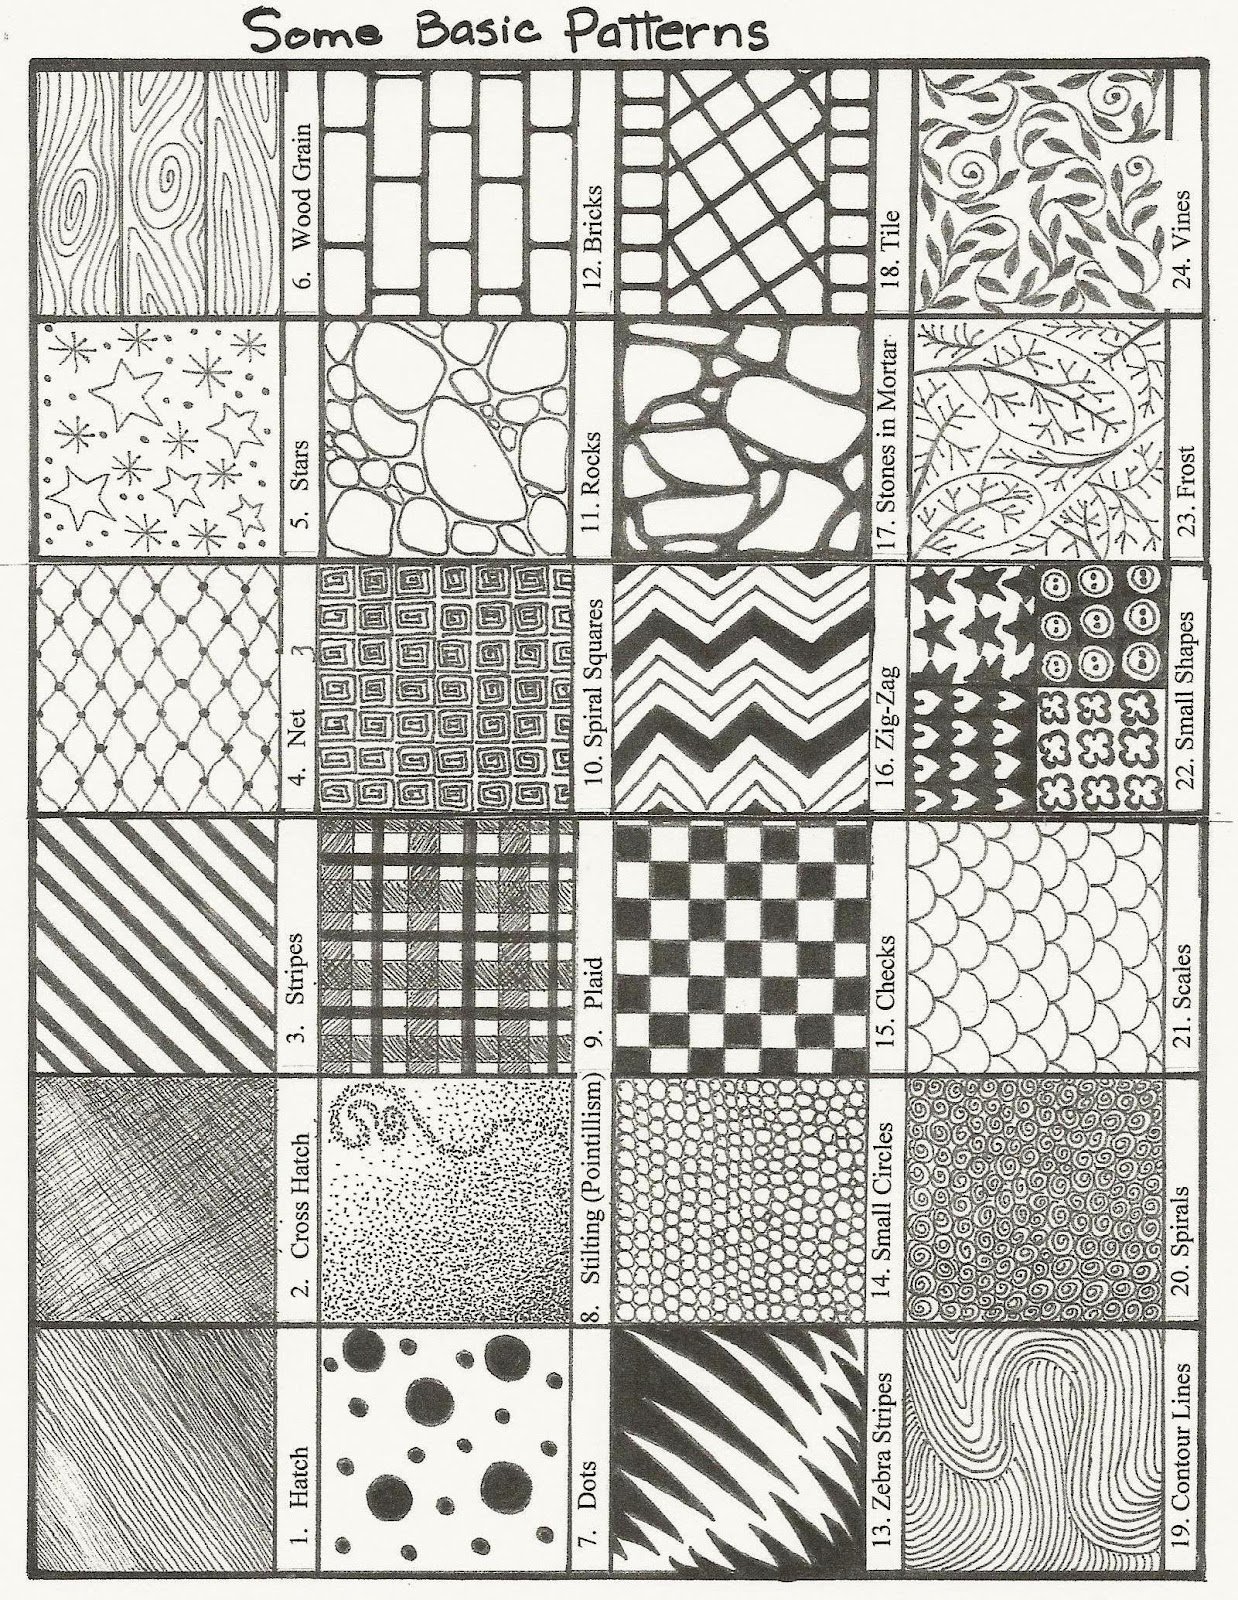 Simple Tumblr Drawings Patterns